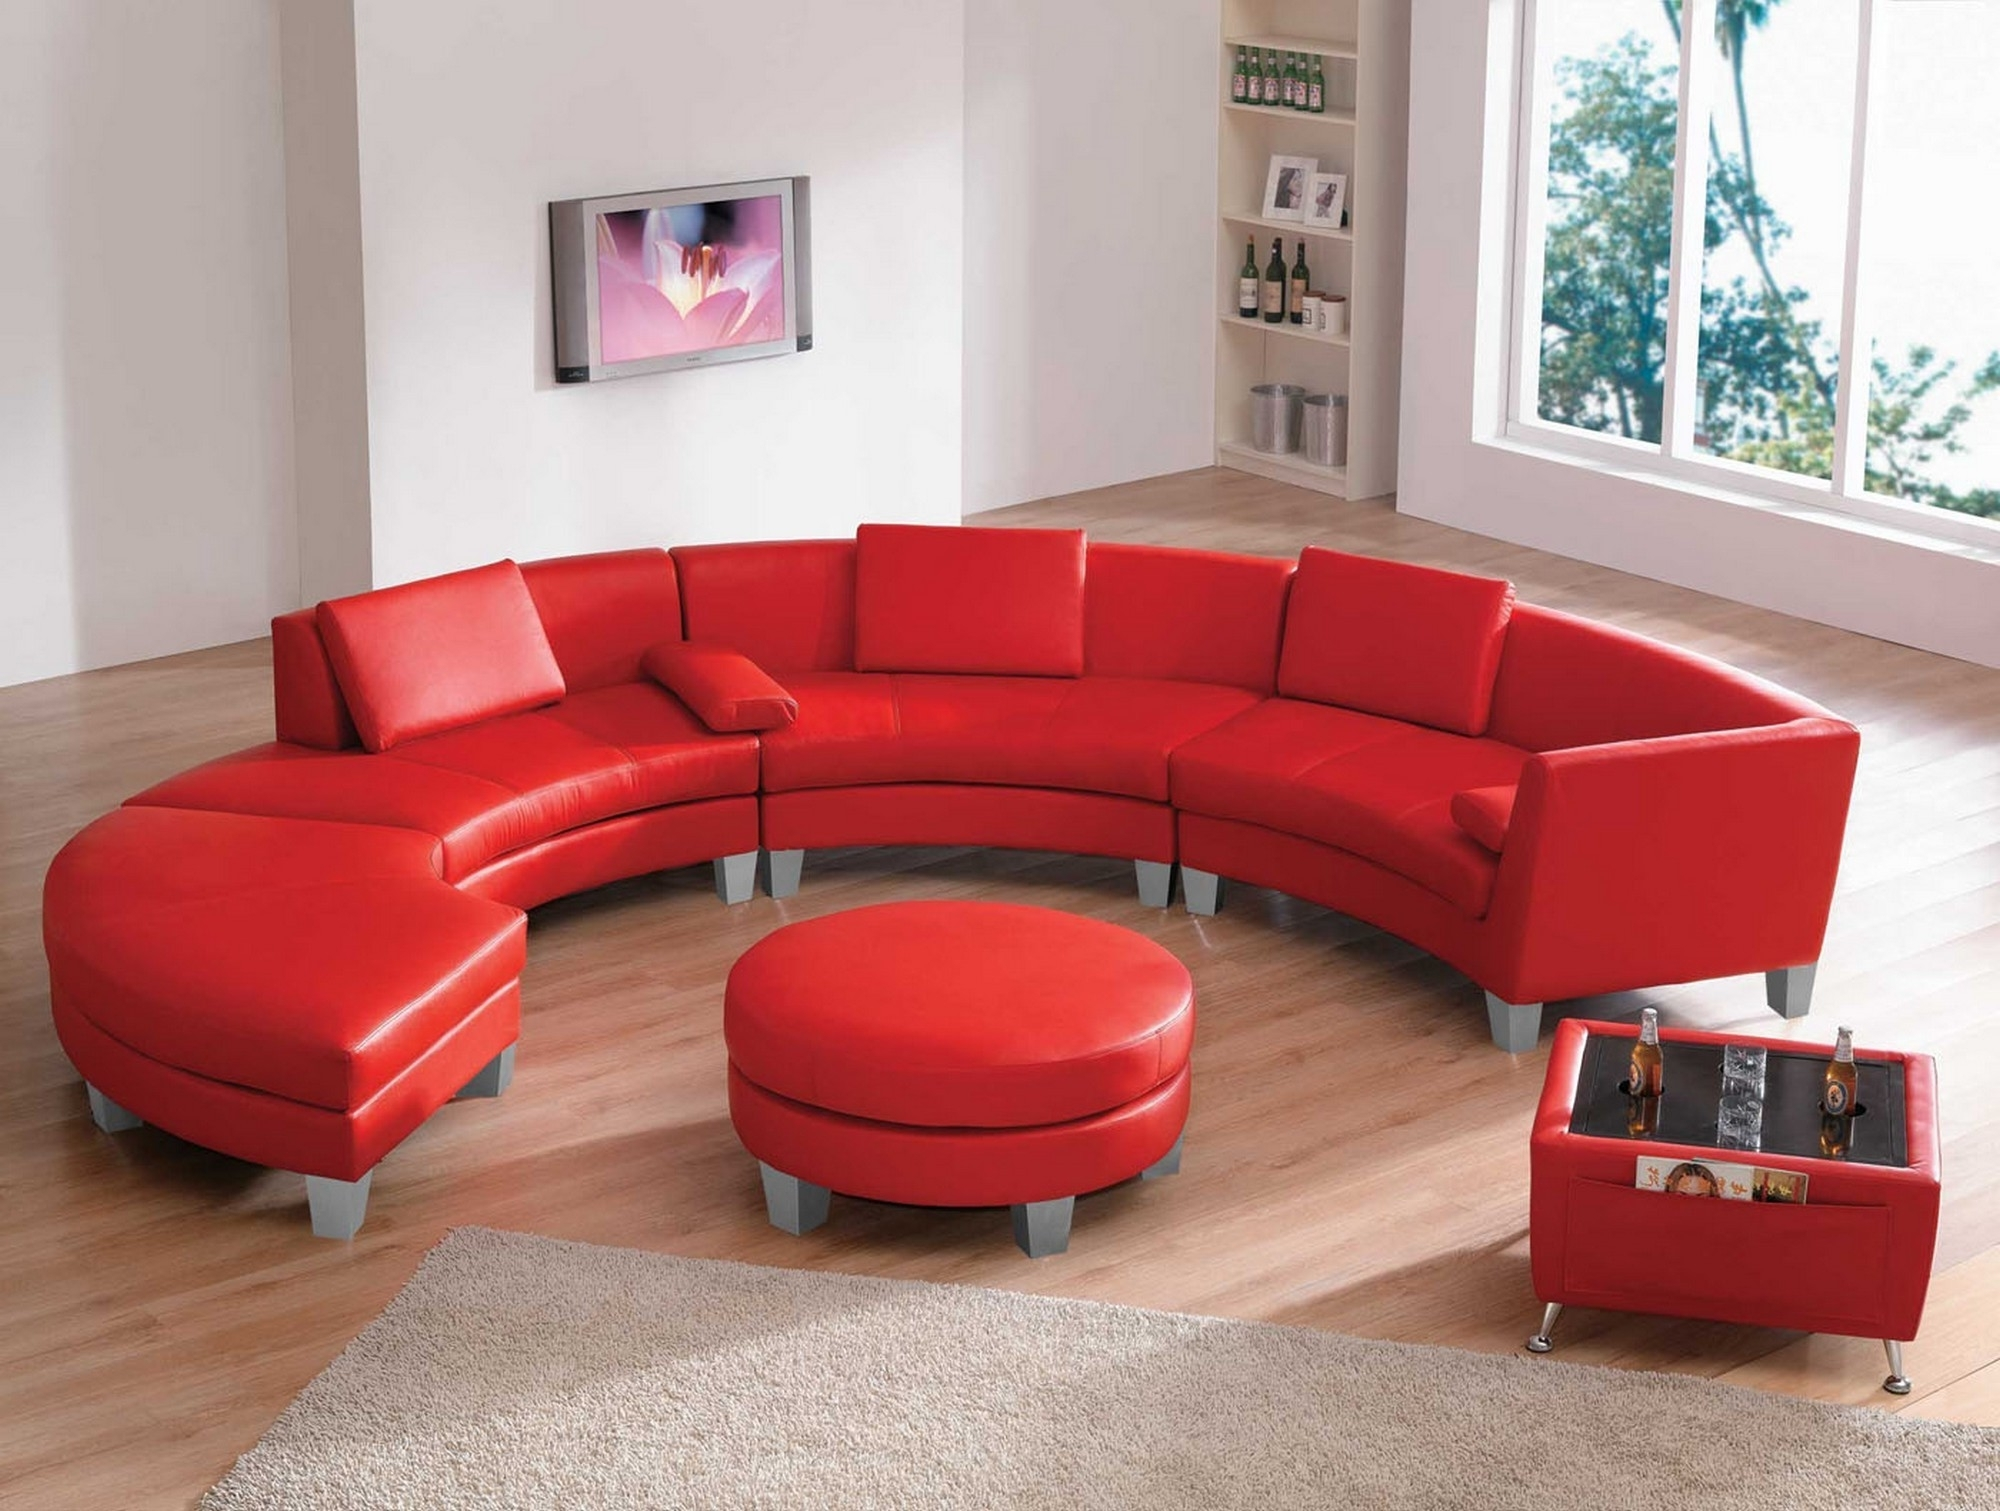 Red Faux Leather Sectionals With Regard To Recent Luxutr Red Faux Leather Sofa Mixed White Cushions And Chromed (View 11 of 20)